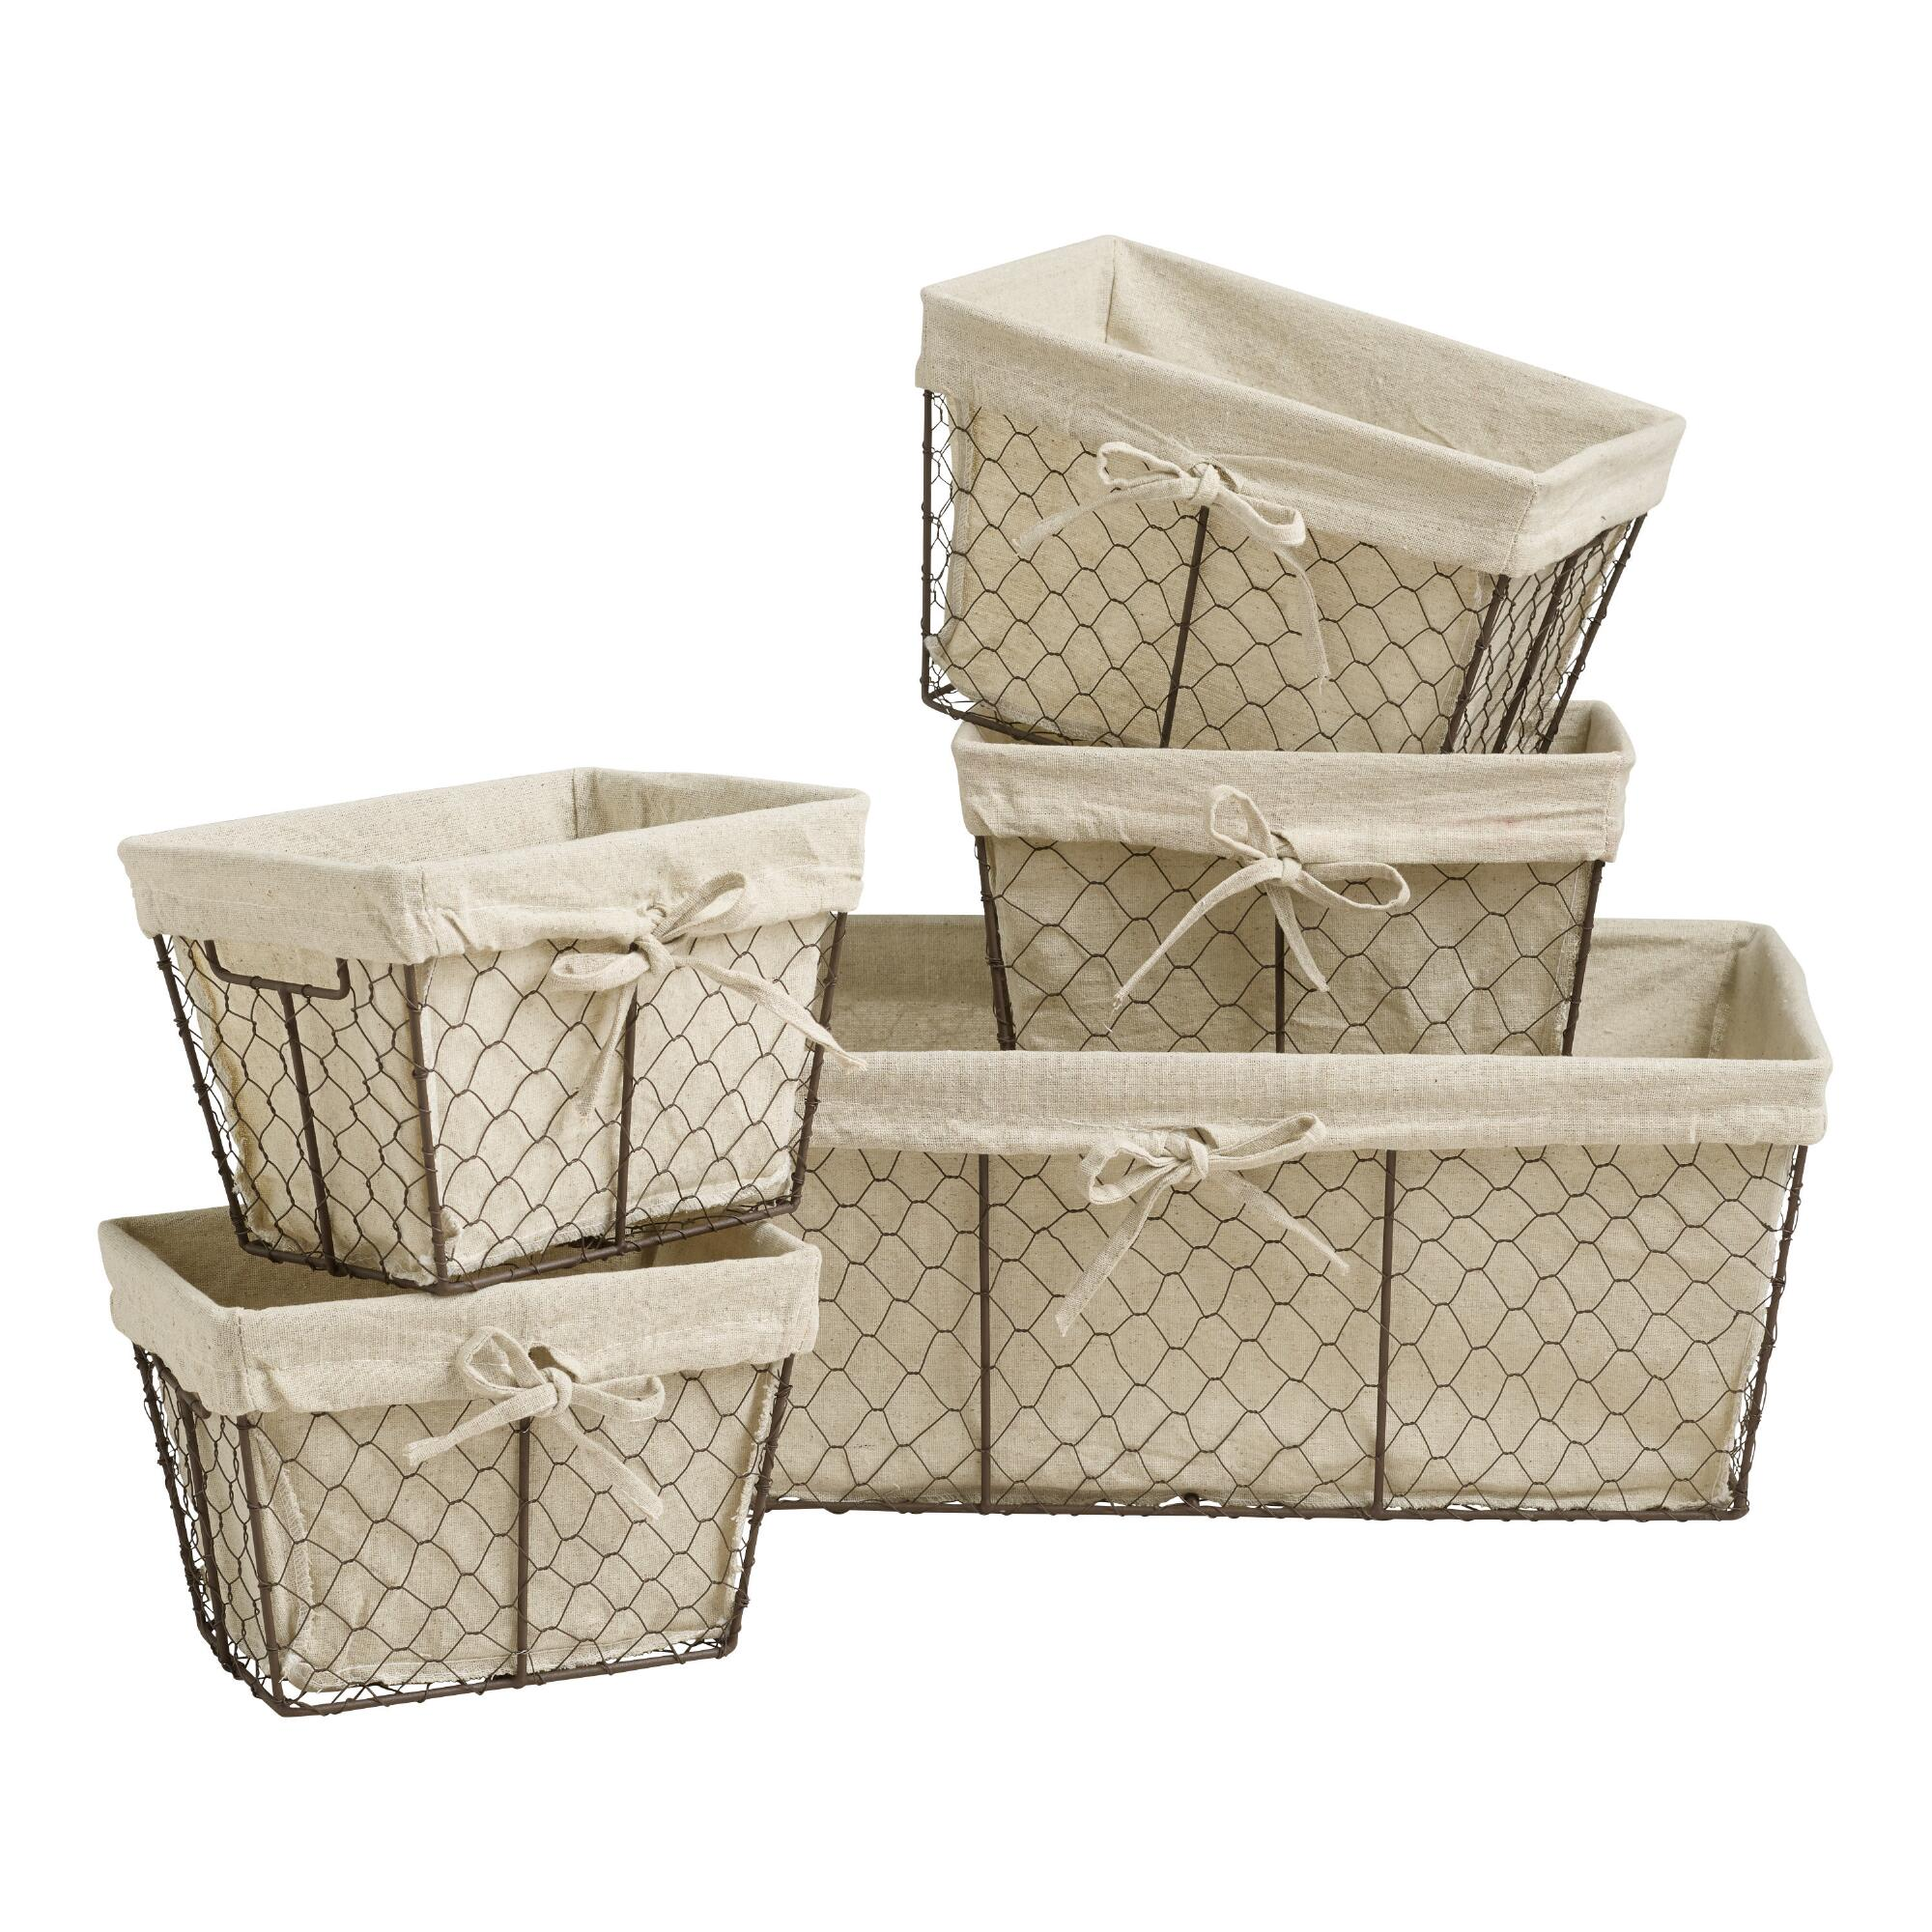 Charlotte Lined Wire Baskets: Natural - Metal - Small by World Market Small